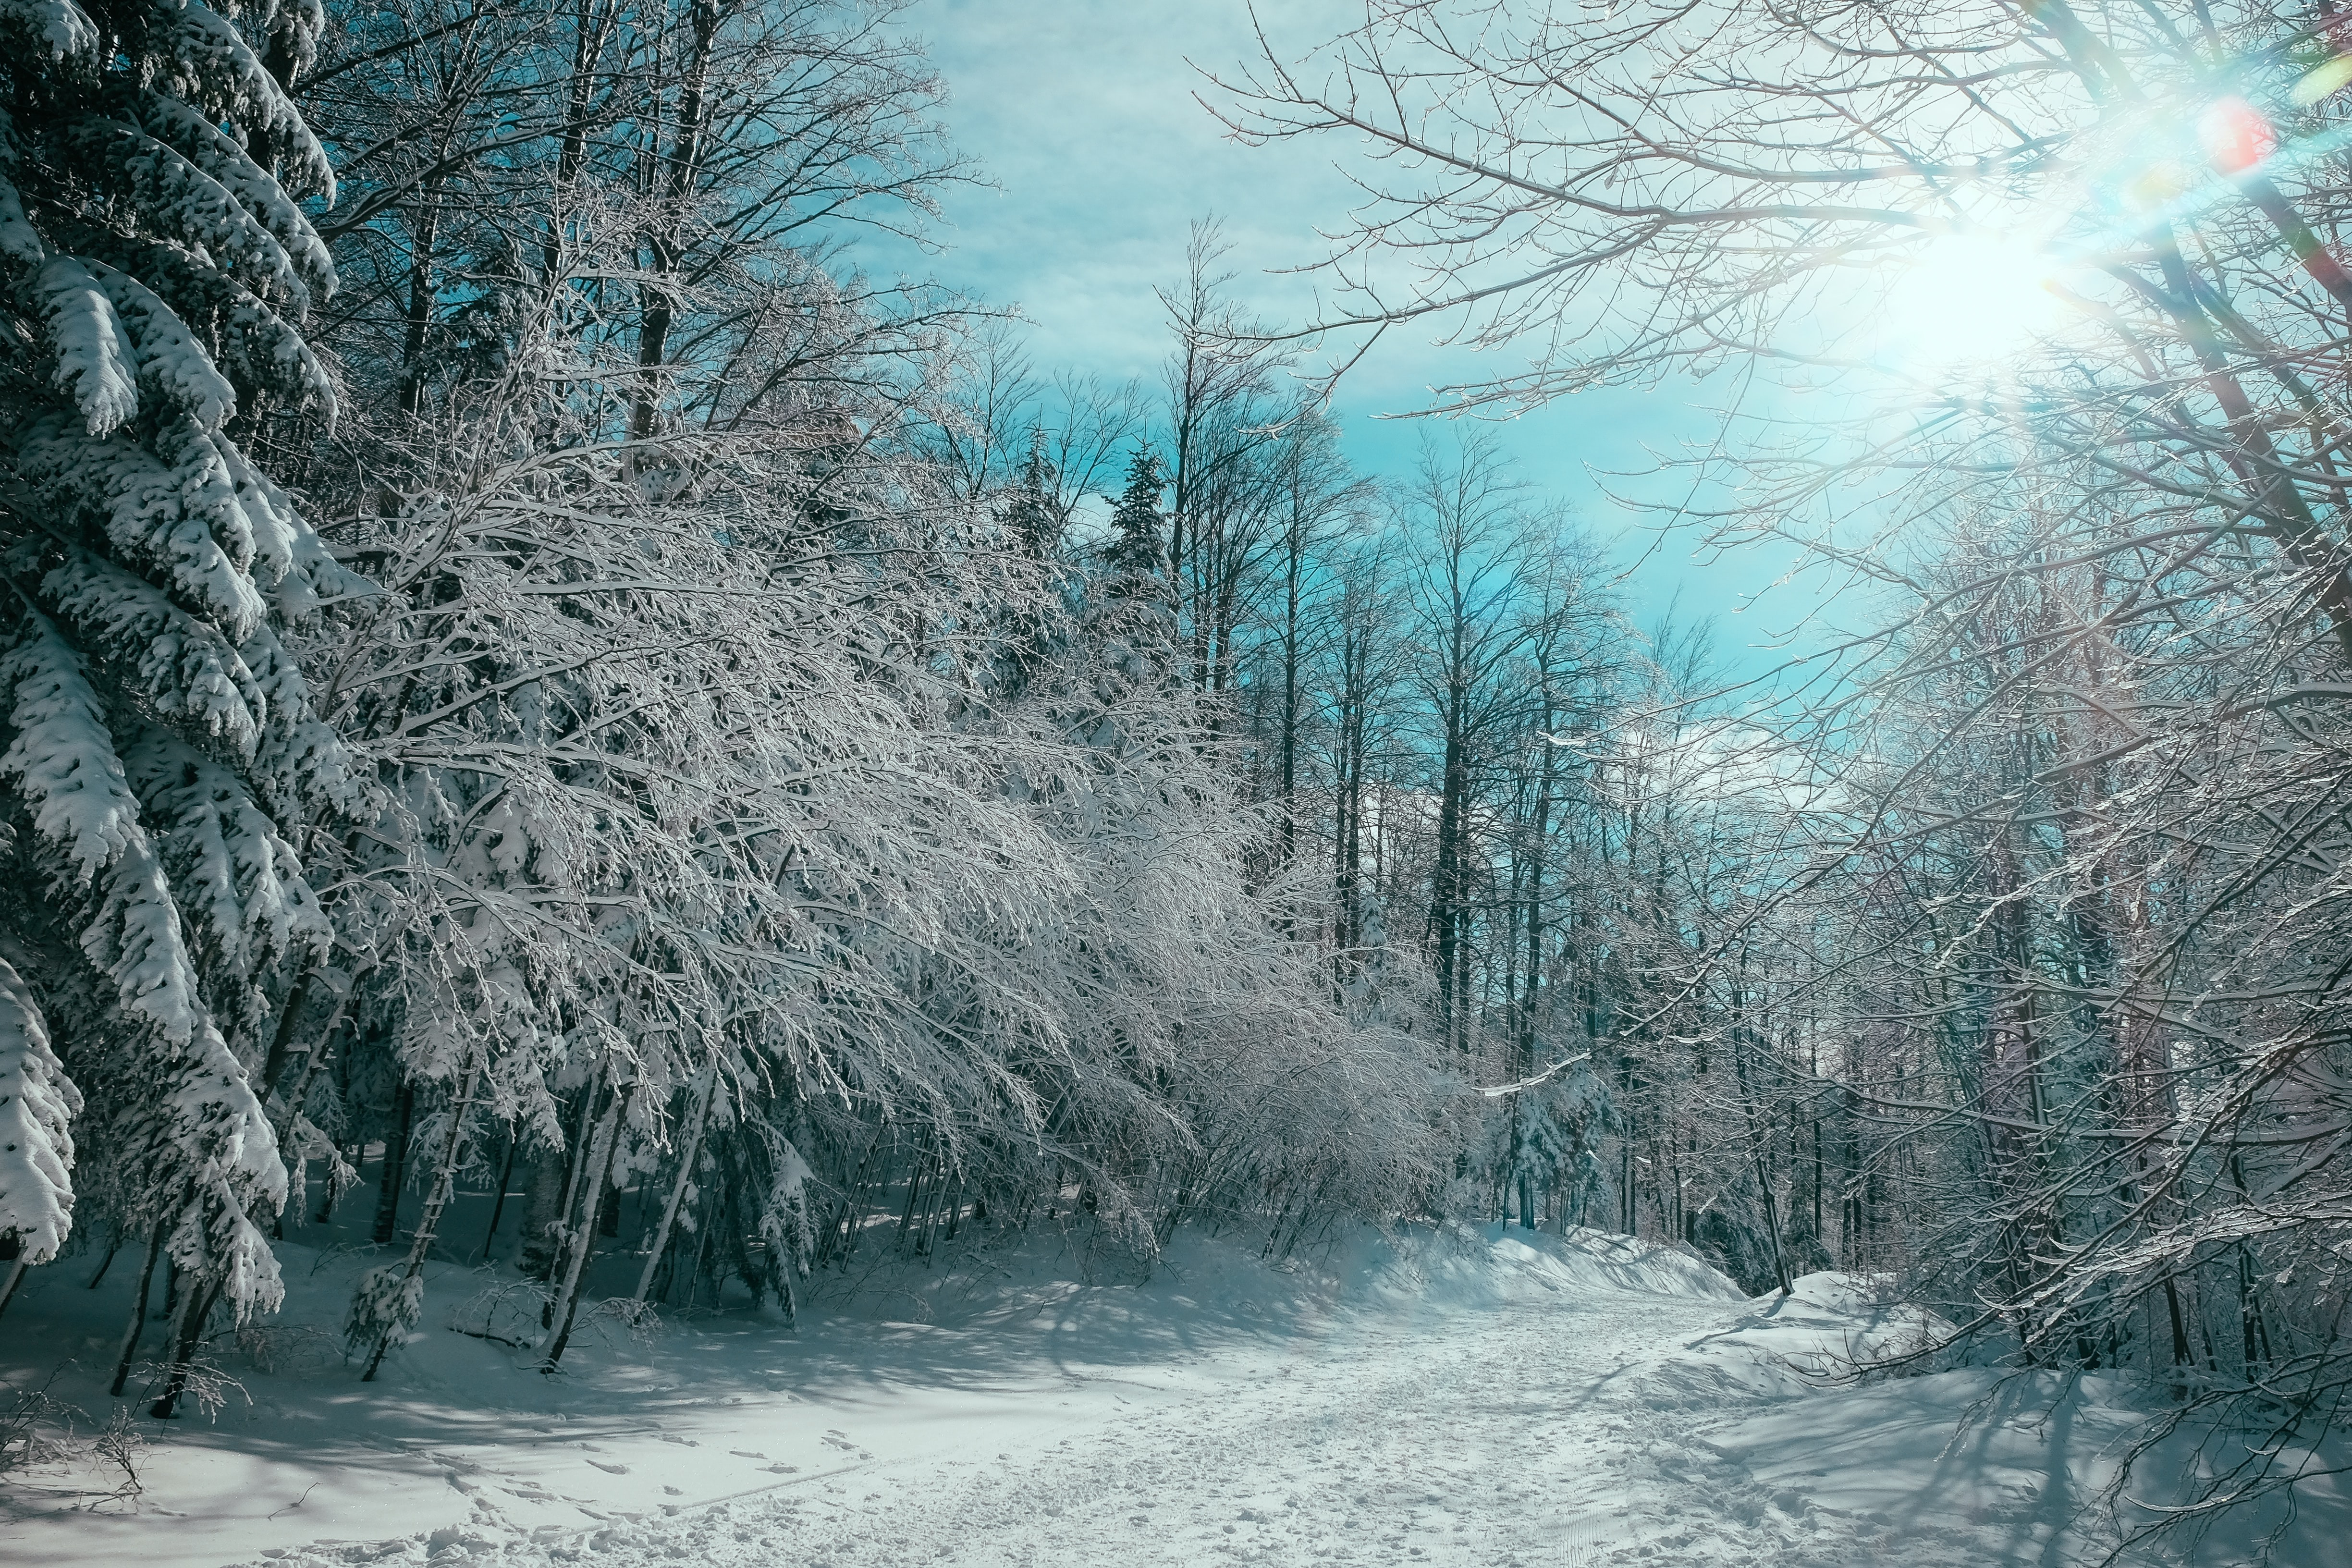 Snow covered road through the forest on a sunny day in Winter